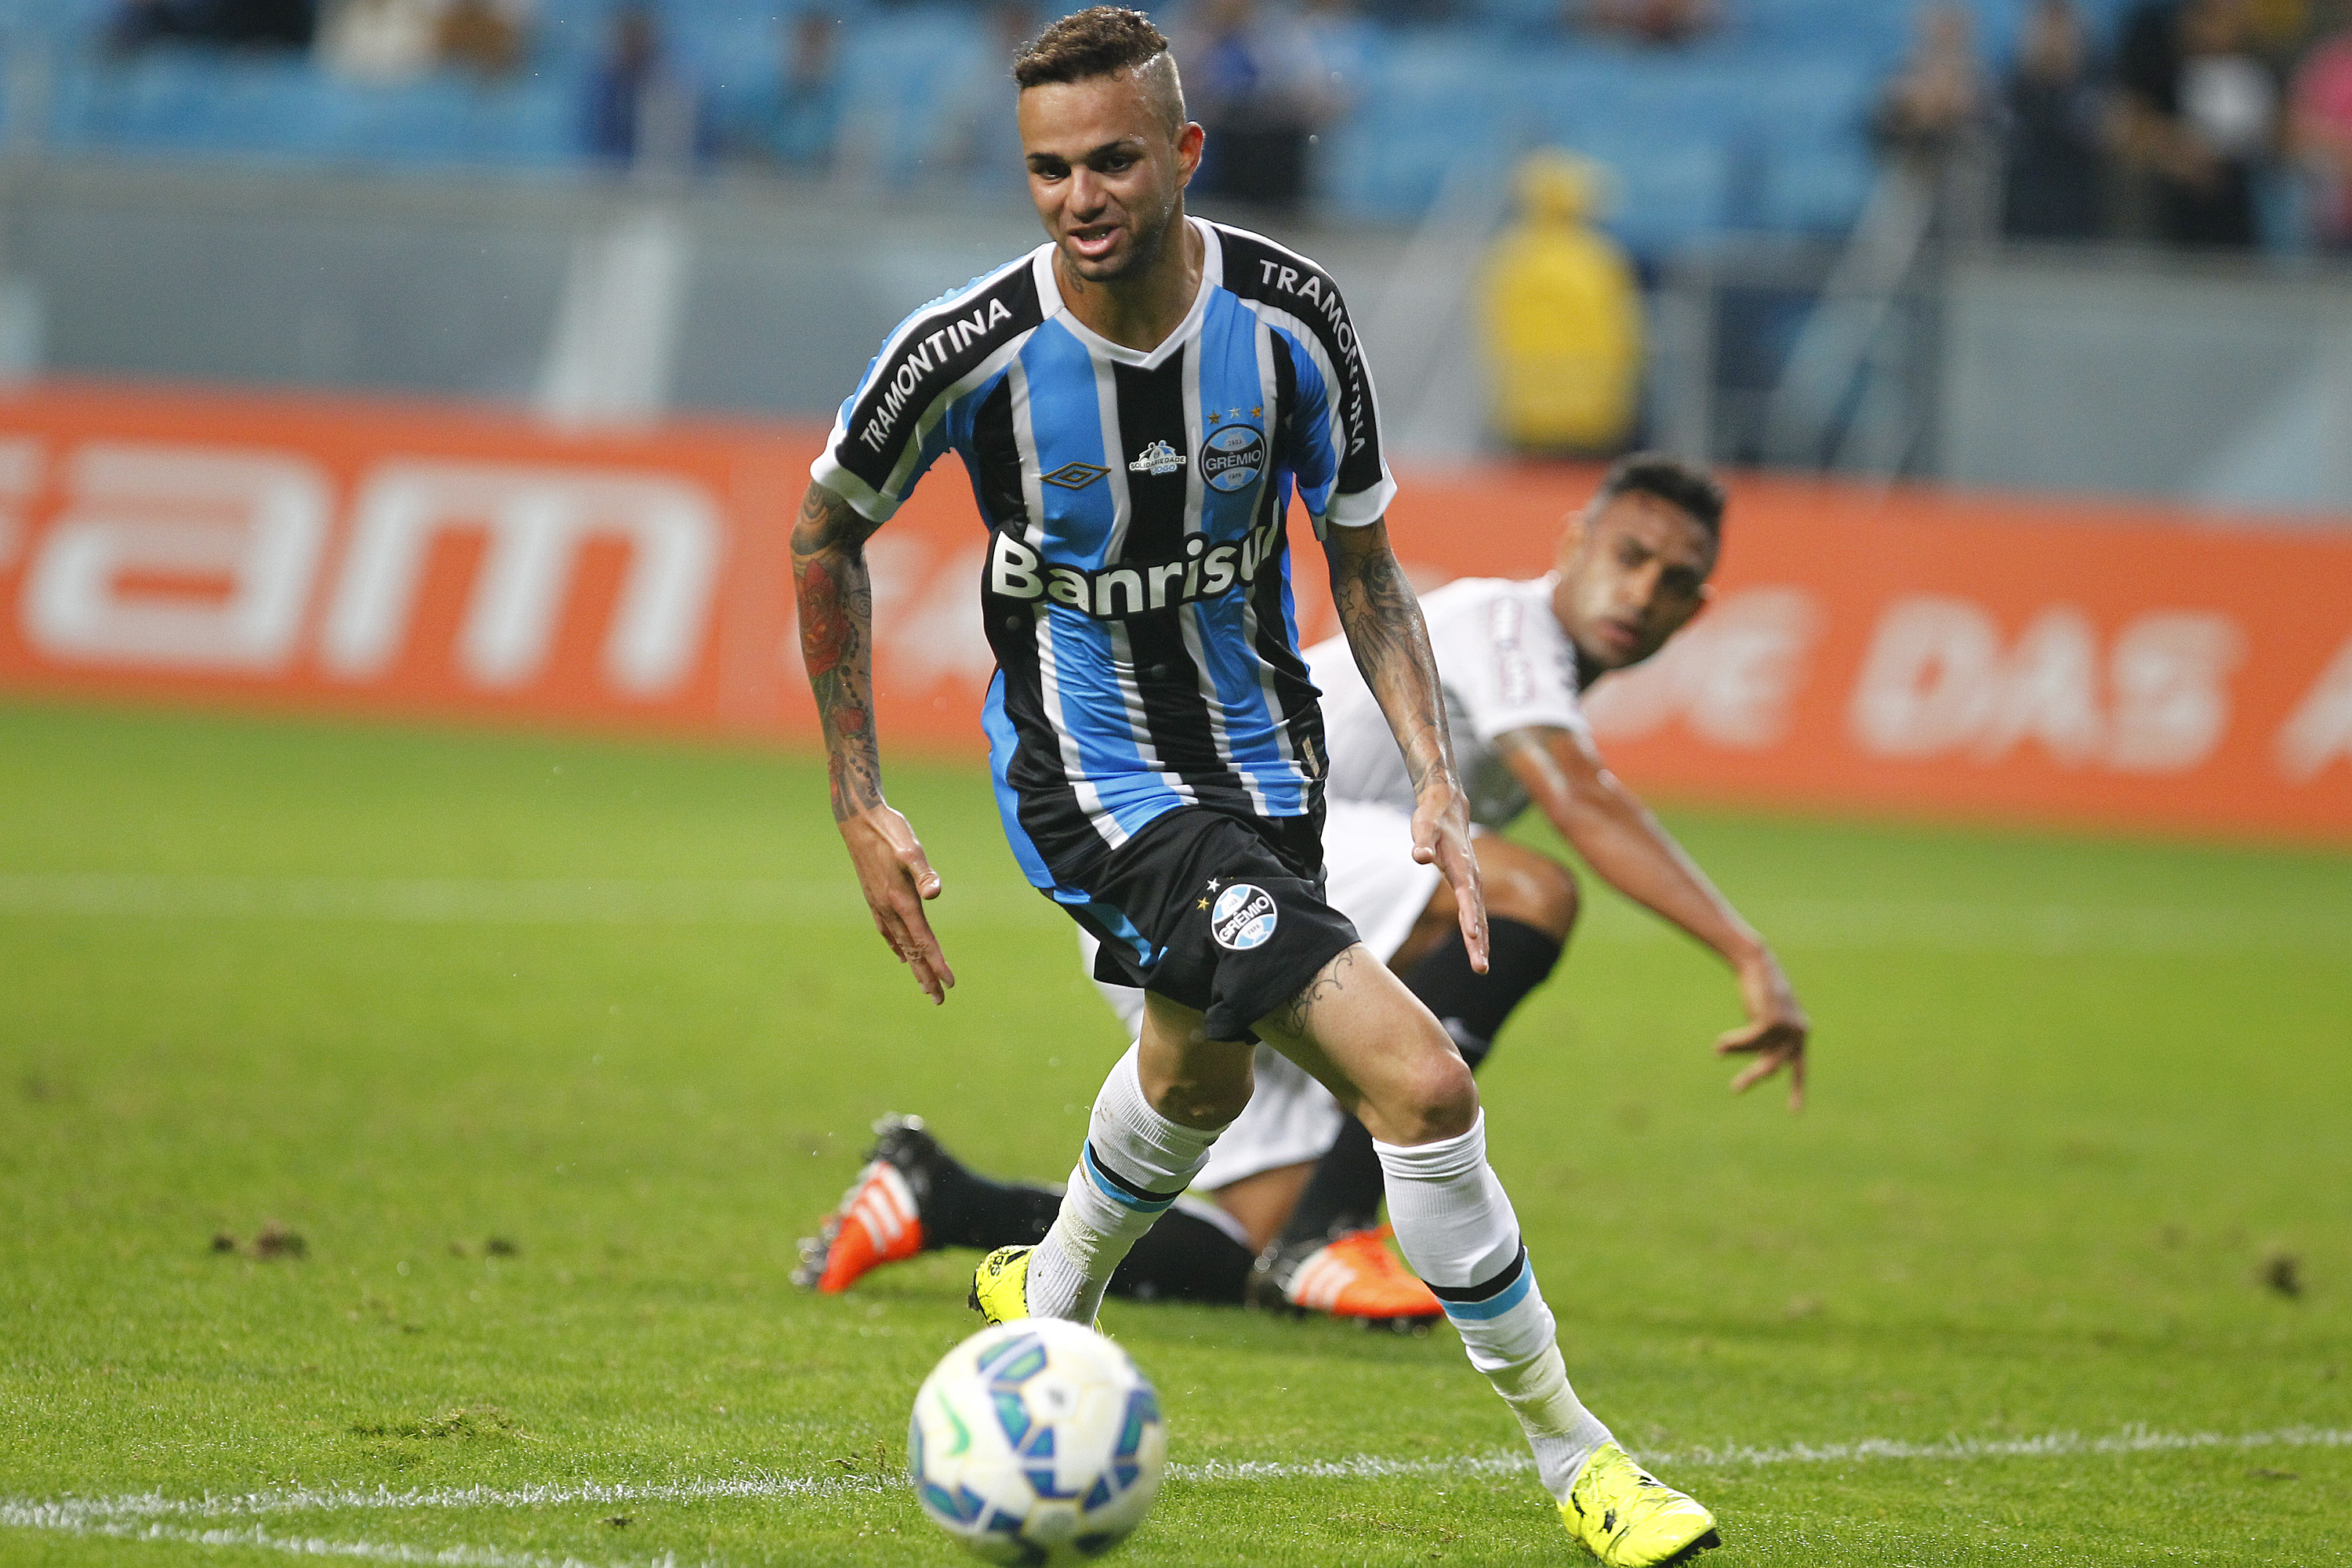 PORTO ALEGRE, BRAZIL - OCTOBER 15: Luan of Gremio battles for the ball against Werley of Santos during the match Gremio v Santos as part of Brasileirao Series A 2015, at Arena do Gremio on October 15, 2015 in Porto Alegre, Brazil. (Photo by Lucas Uebel/Getty Images)